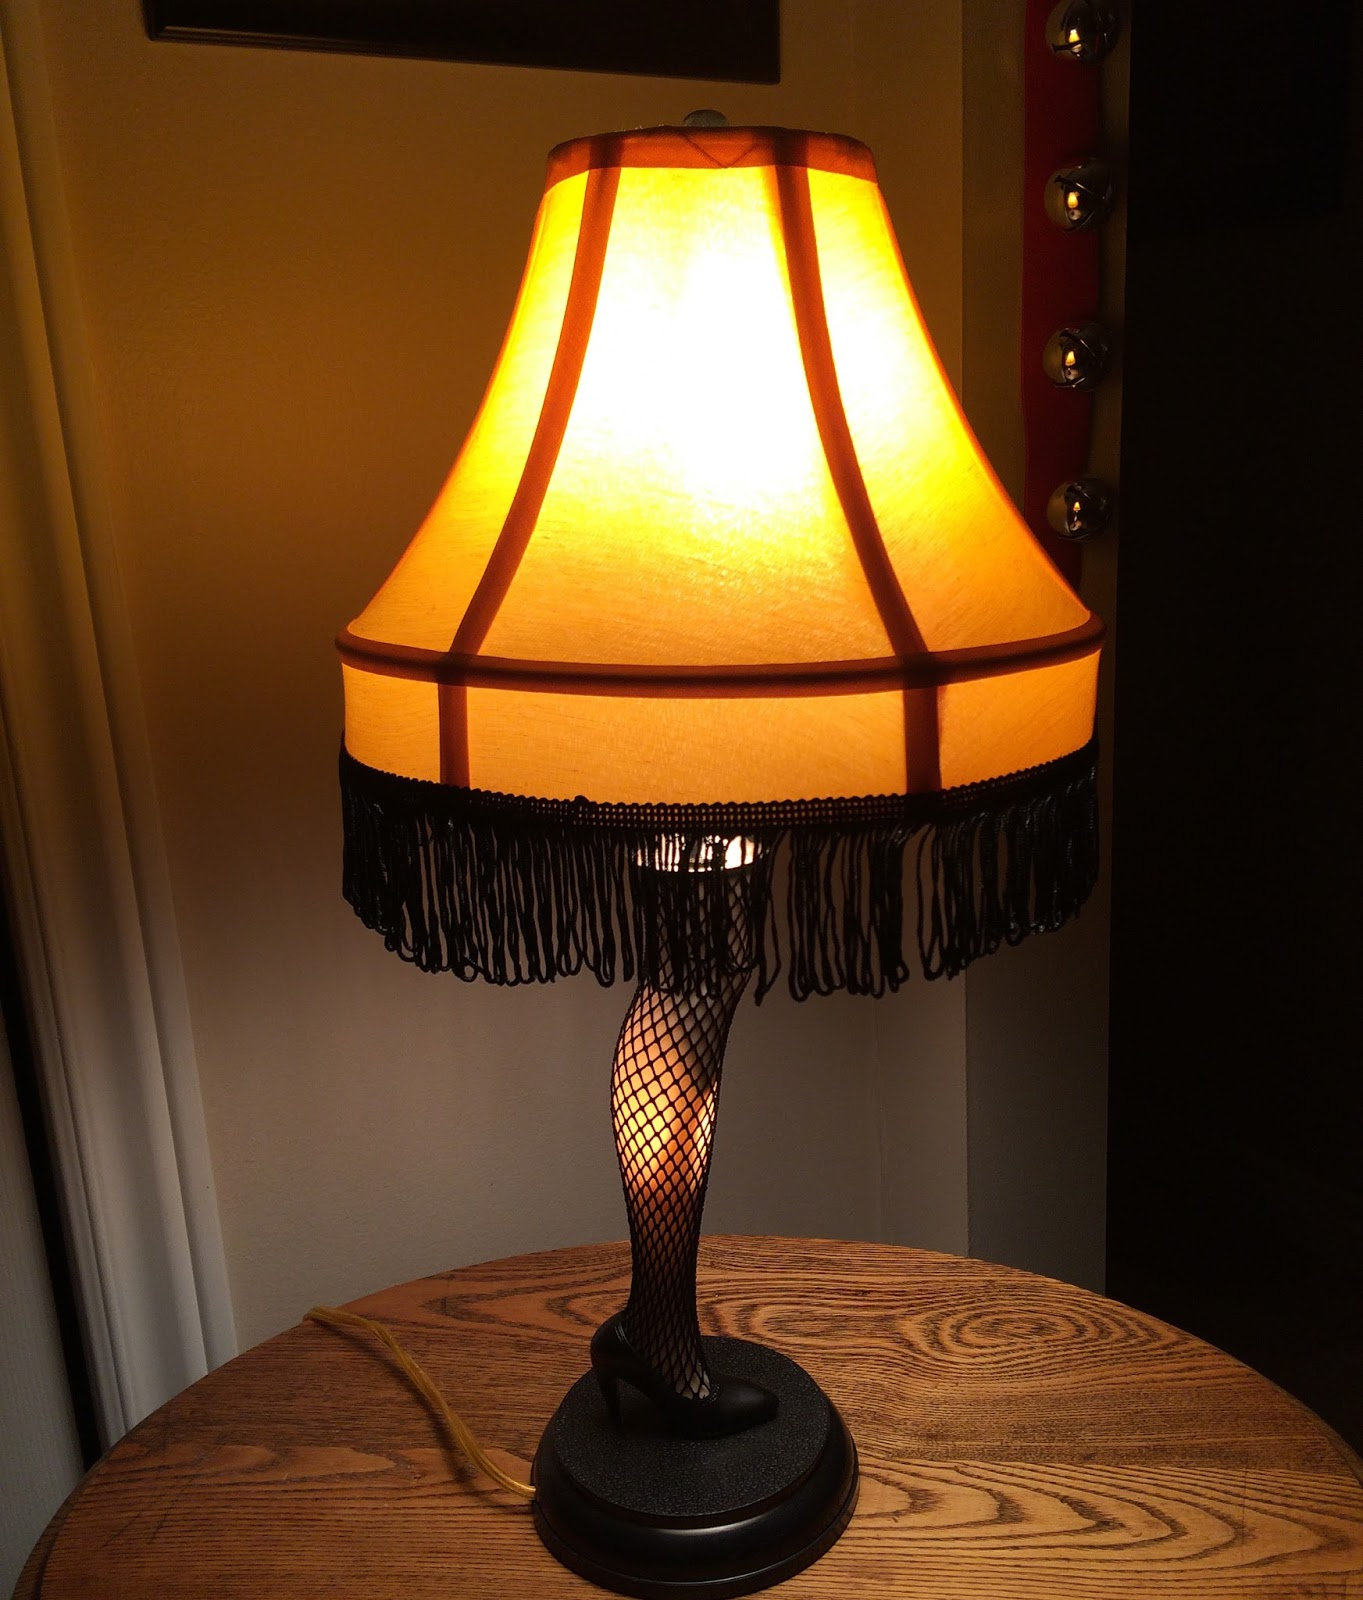 Christmas Story Leg Lamp In Window